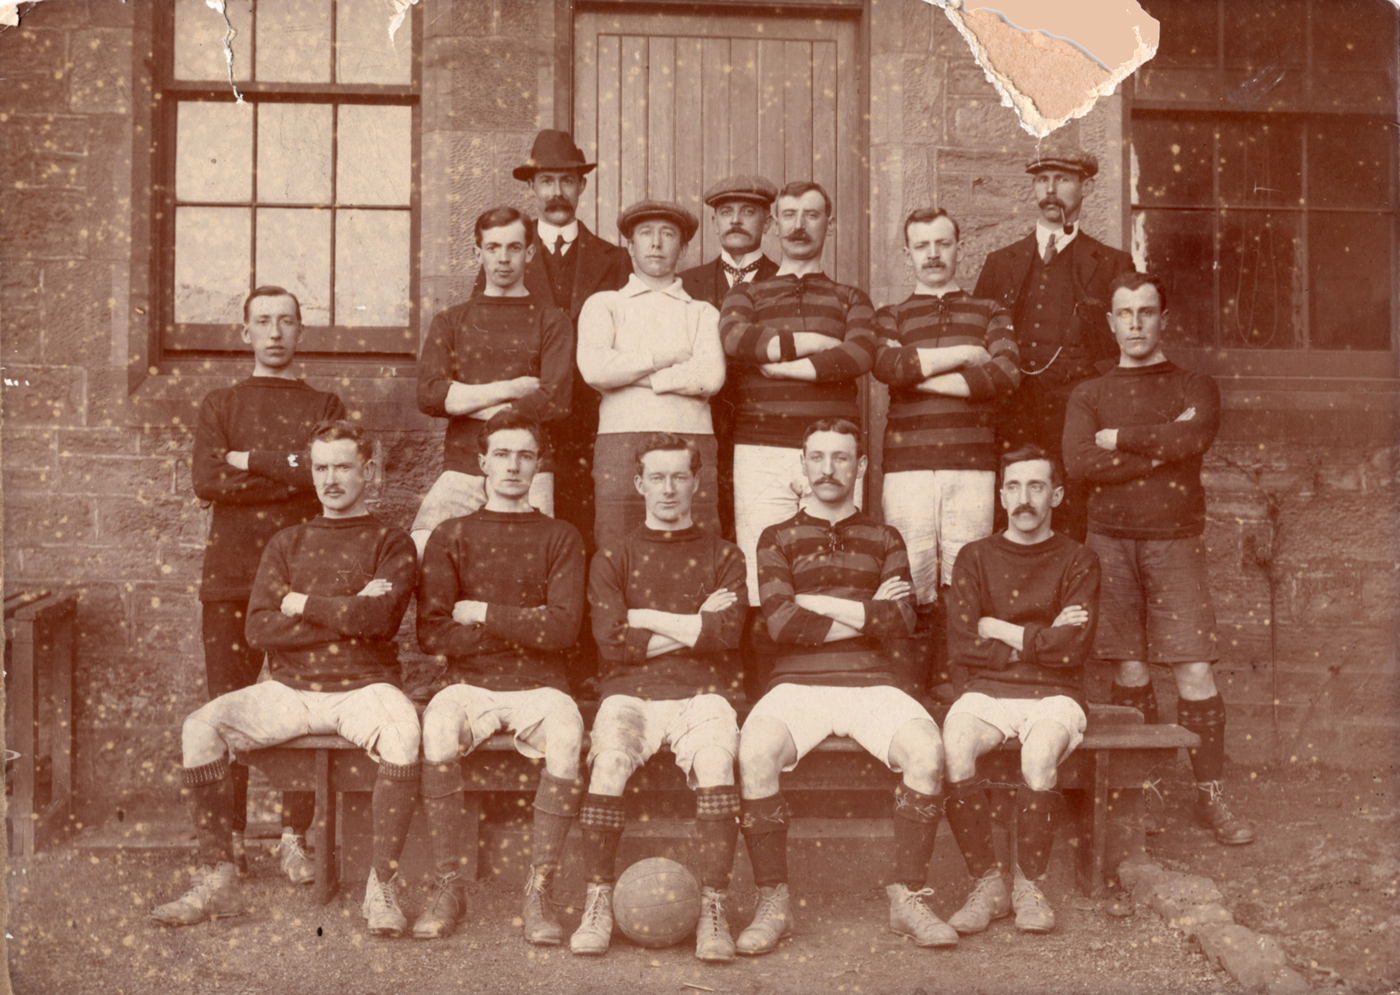 Unidentified Football Team 1910s